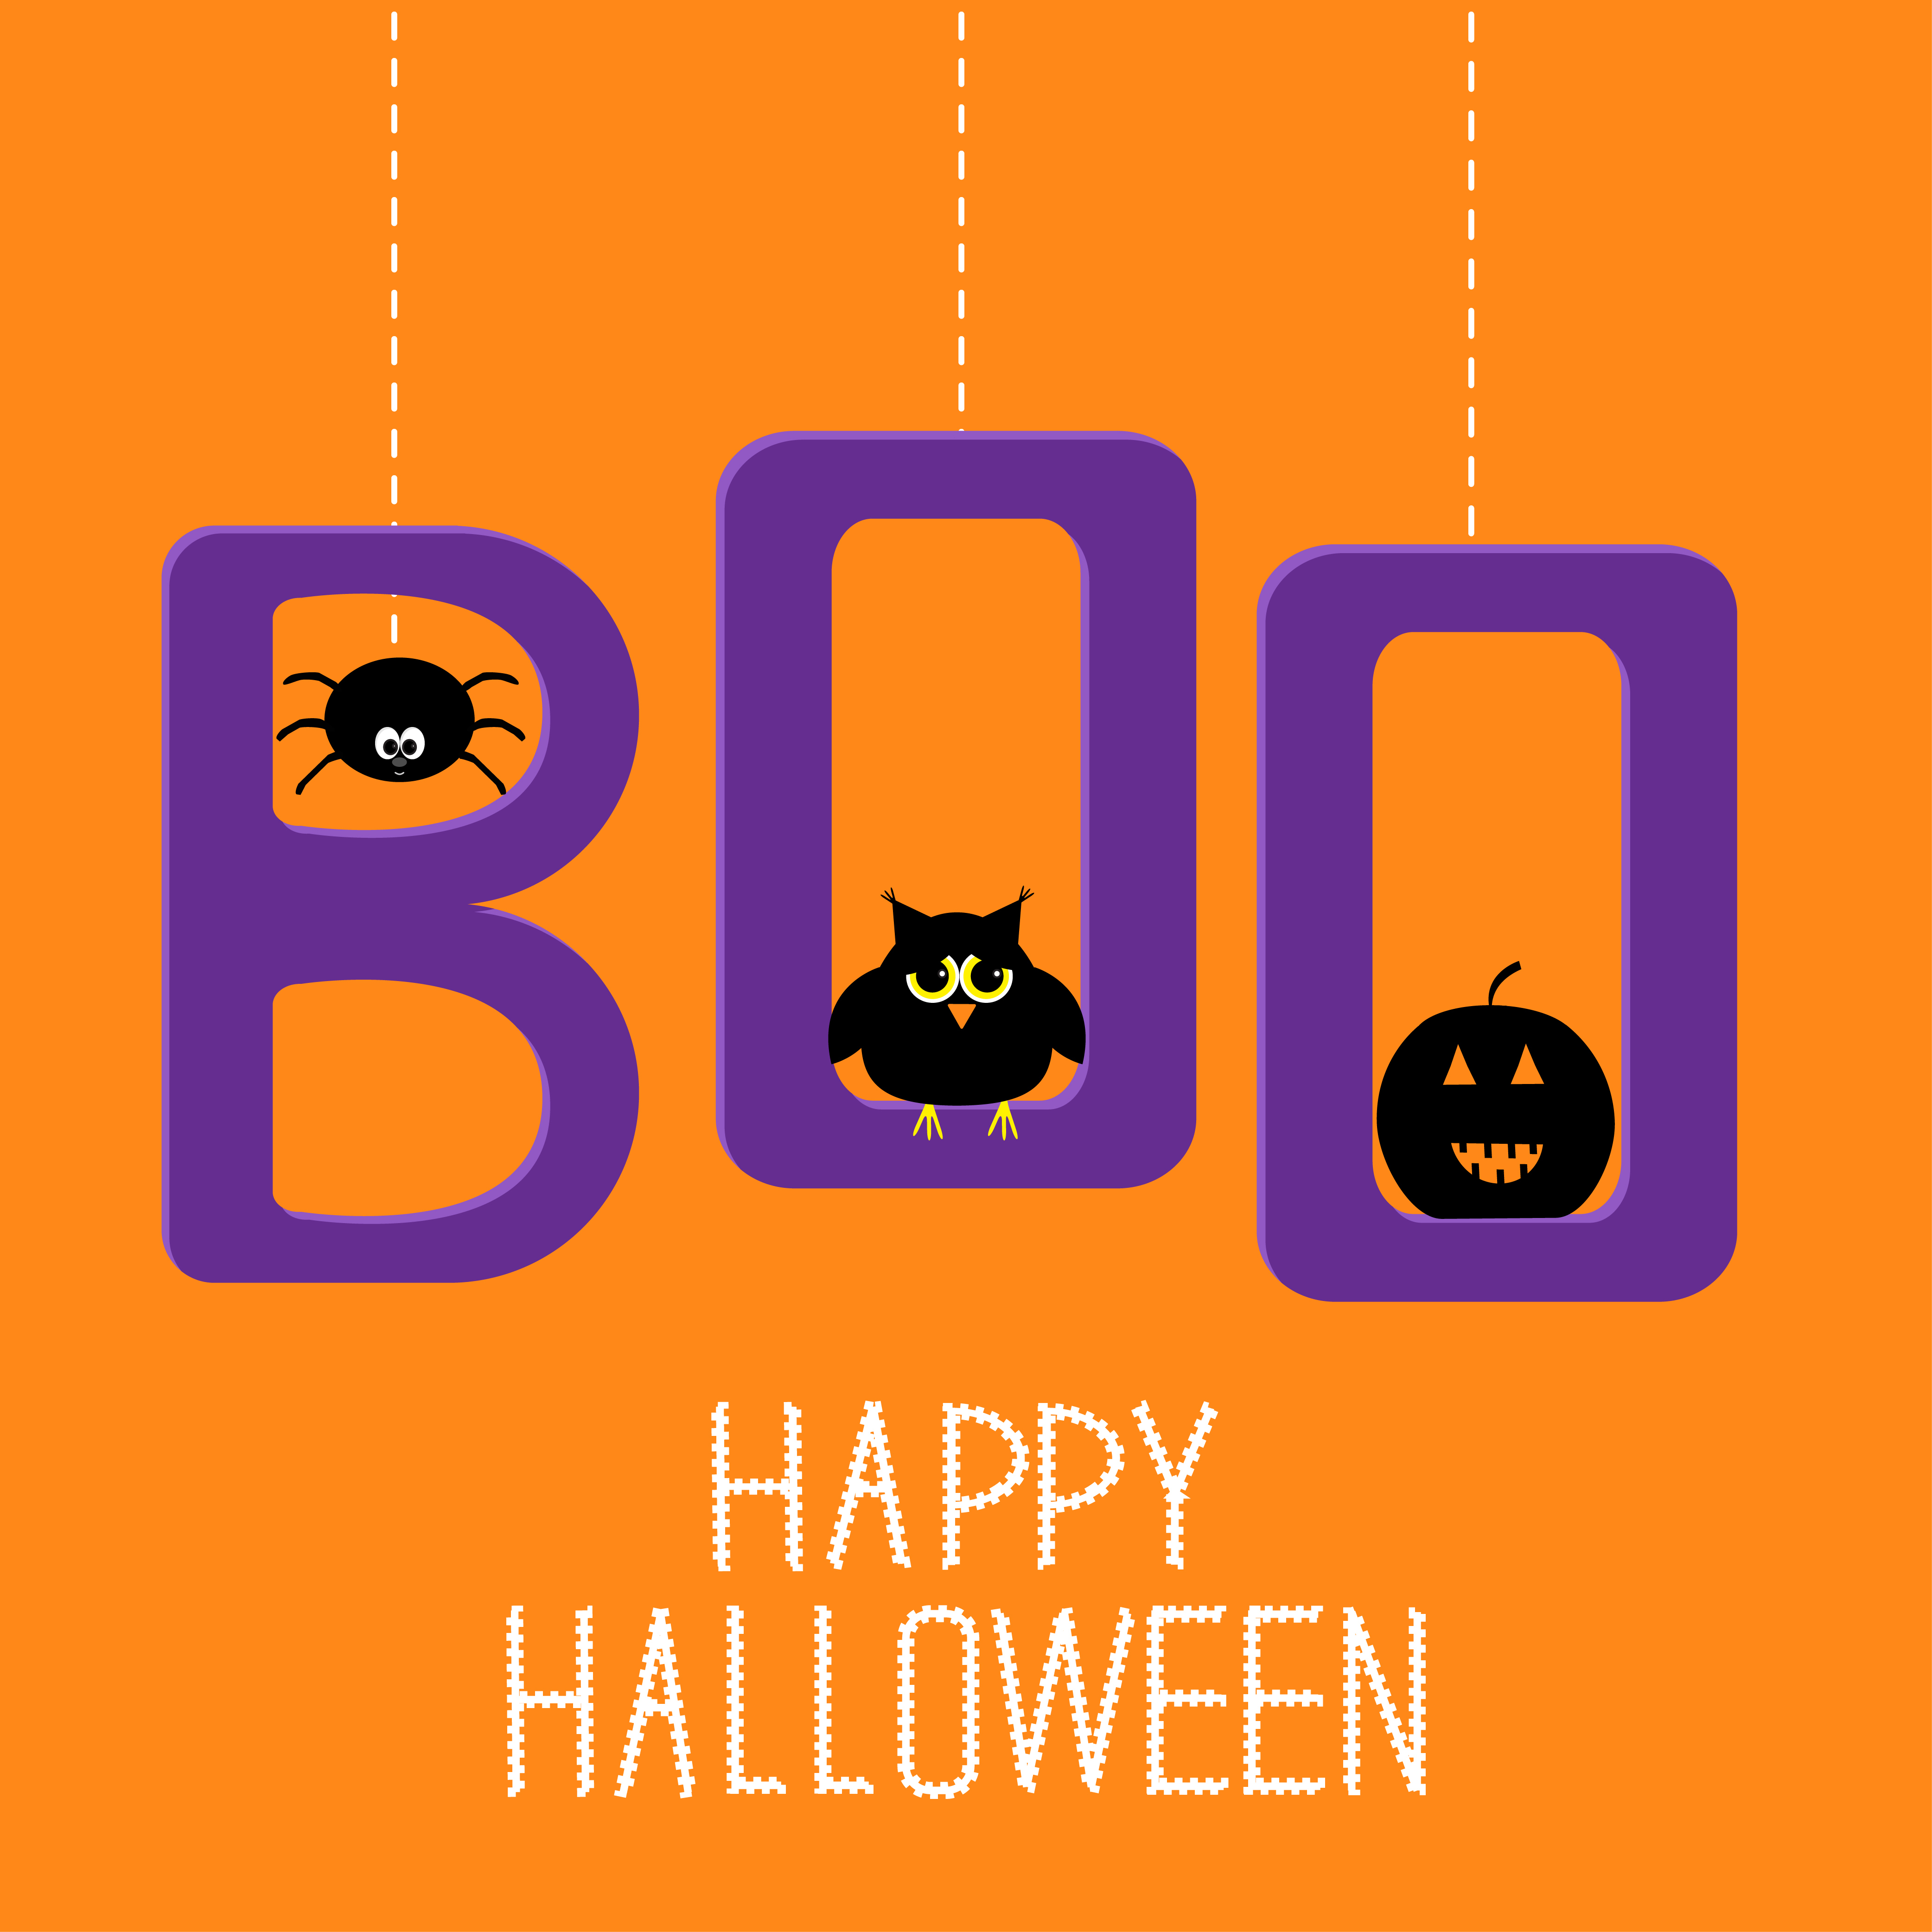 Boo Halloween from Shutterstock